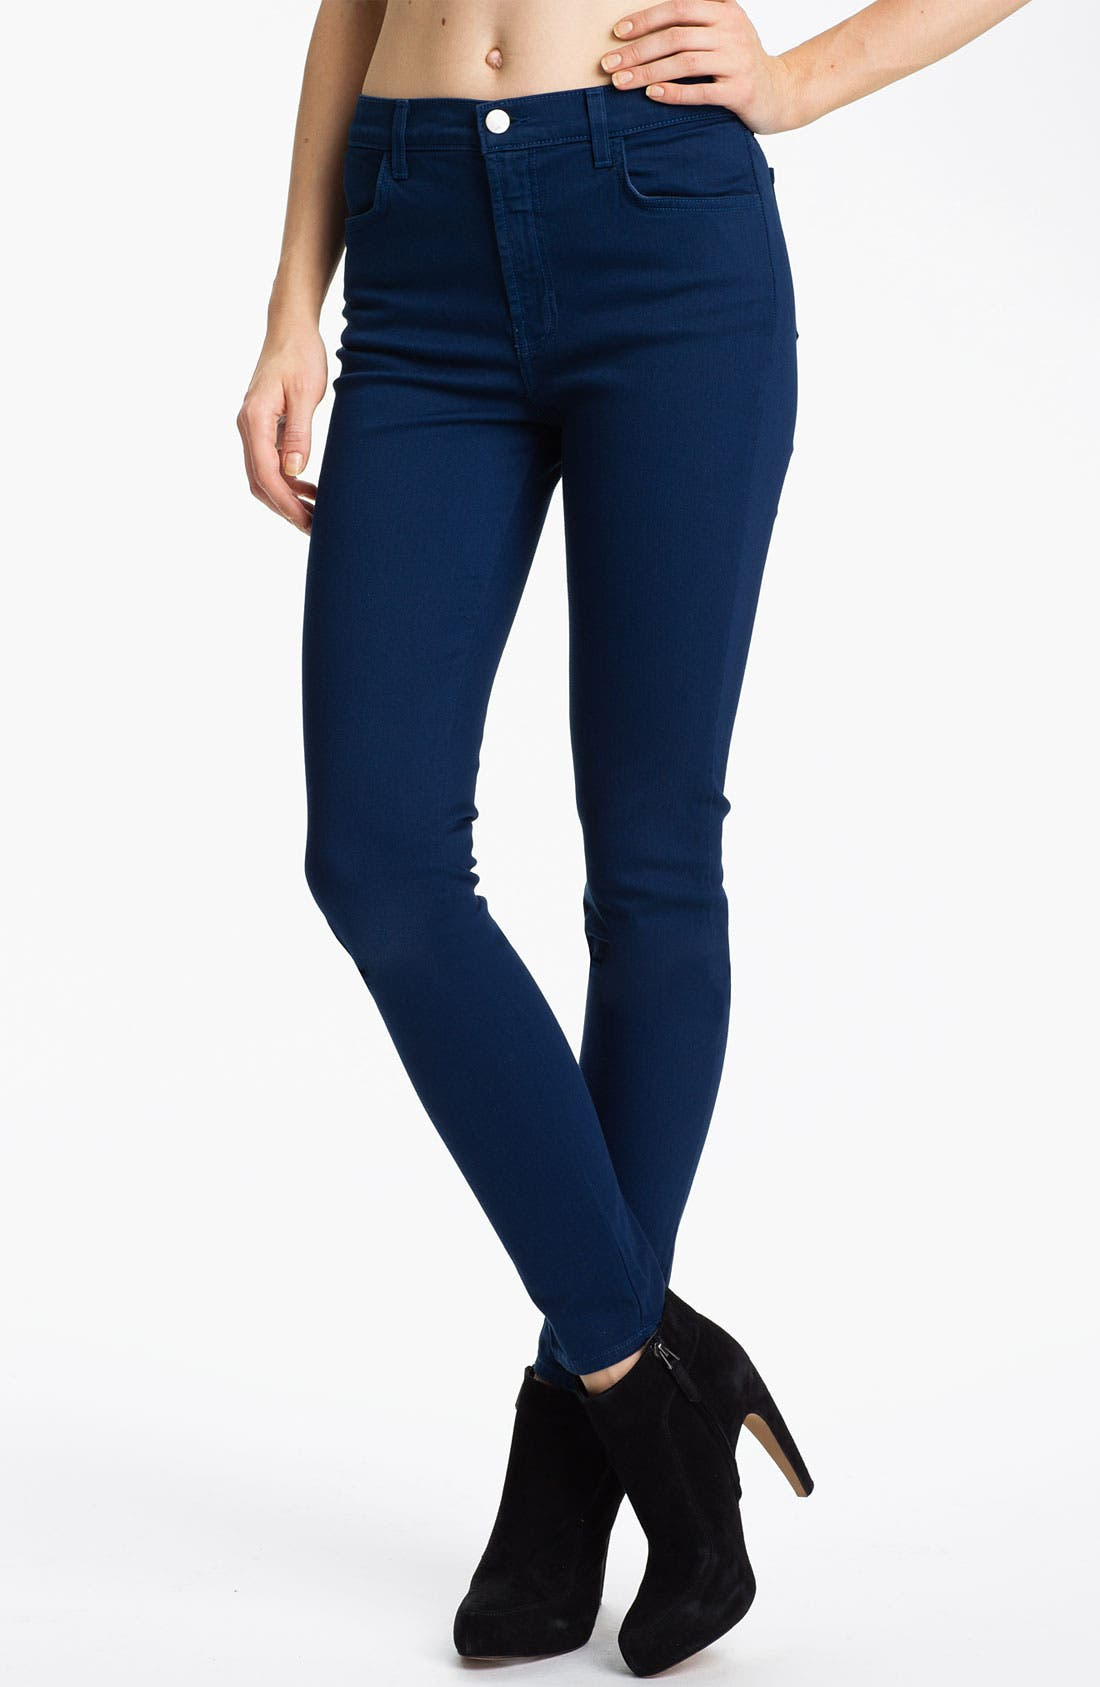 Alternate Image 1 Selected - J Brand 'Maria' High Rise Skinny Stretch Jeans (Nightfall)